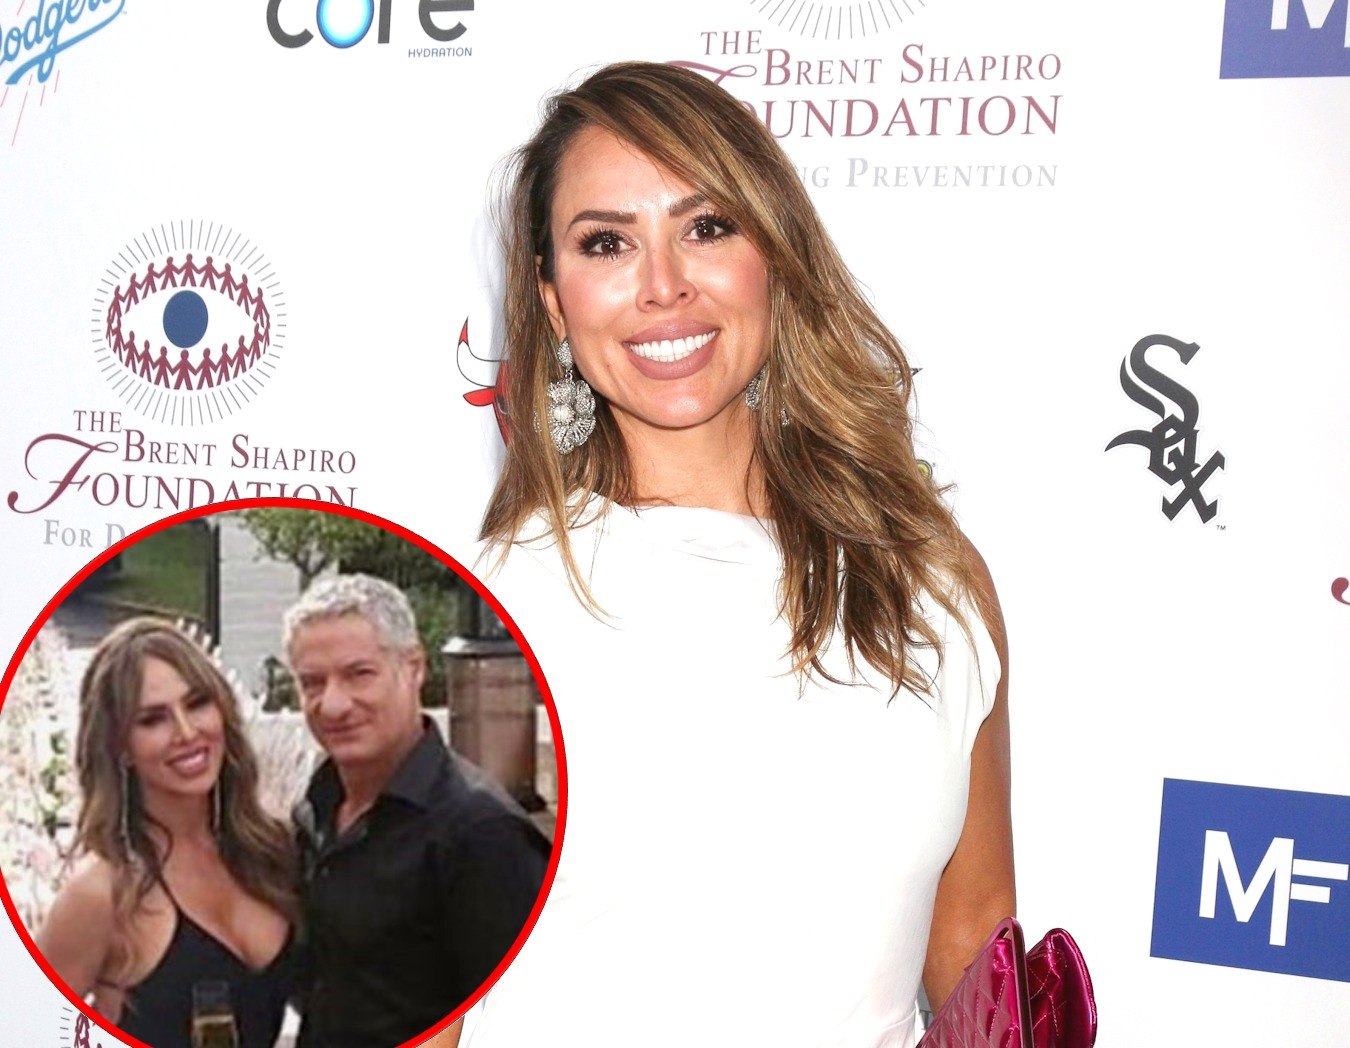 RHOC Star Kelly Dodd Reveals She Is Sick After Weekend Wedding, Says Other Family Members are Also Sick as Shannon Helps Her Cope After Battling COVID-19 Earlier This Year